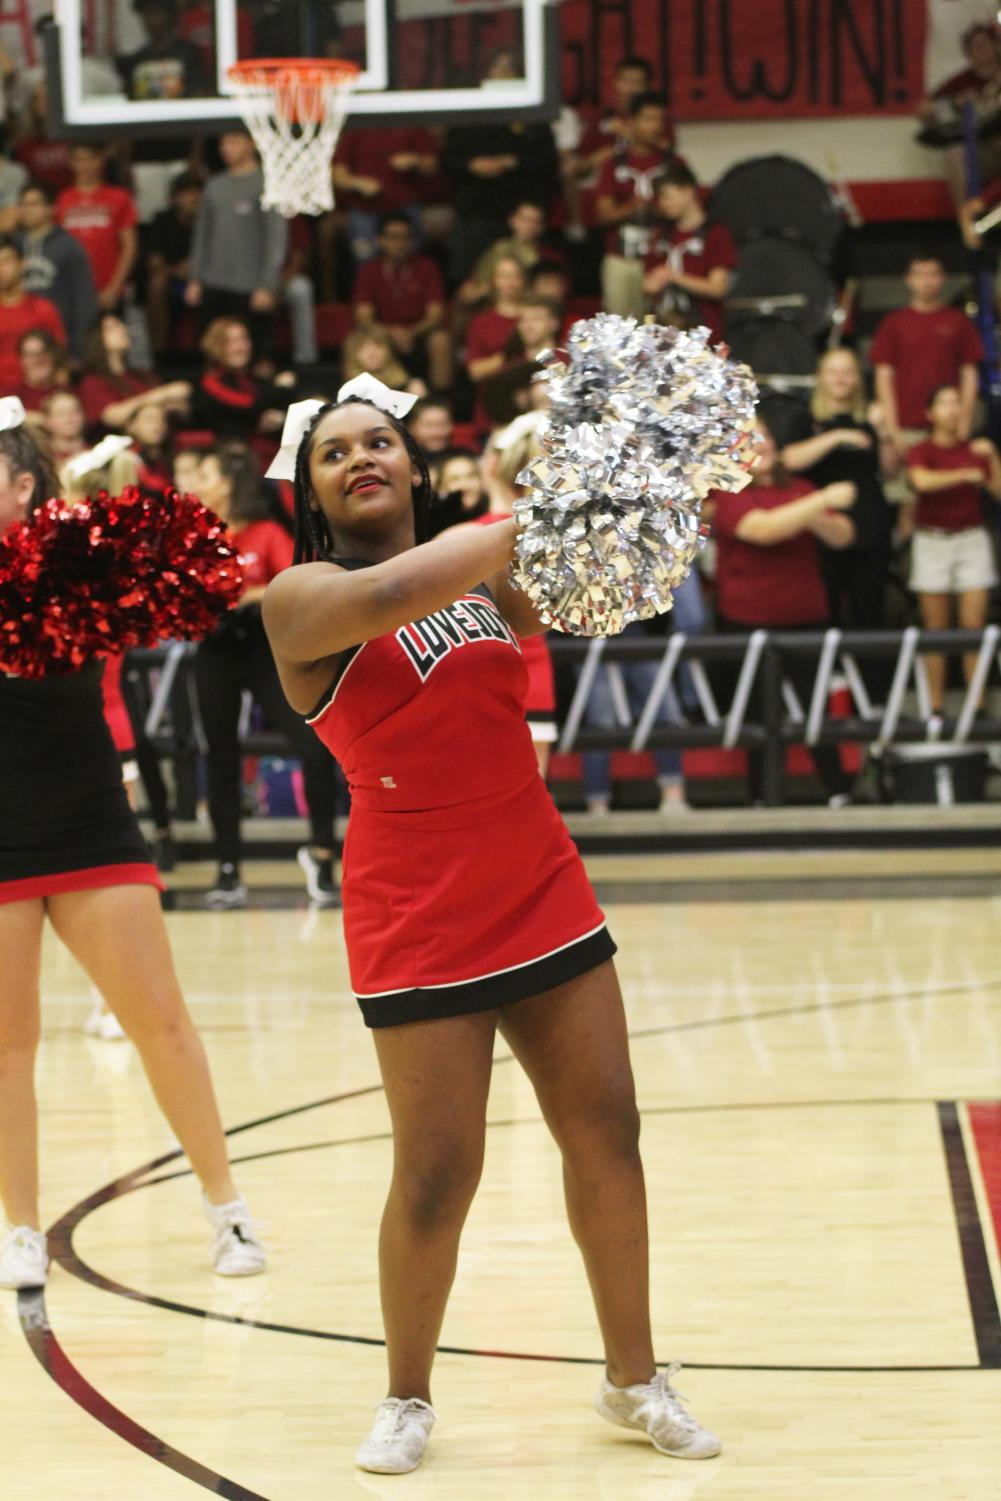 Cheerleader+Hannah+Patrick+performs+a+routine+during+the+pep+rally.+Hannah+has+been+cheering+for+LHS+for+three+years%2C+and+will+be+with+Varsity+at+tonight%27s+home+game.